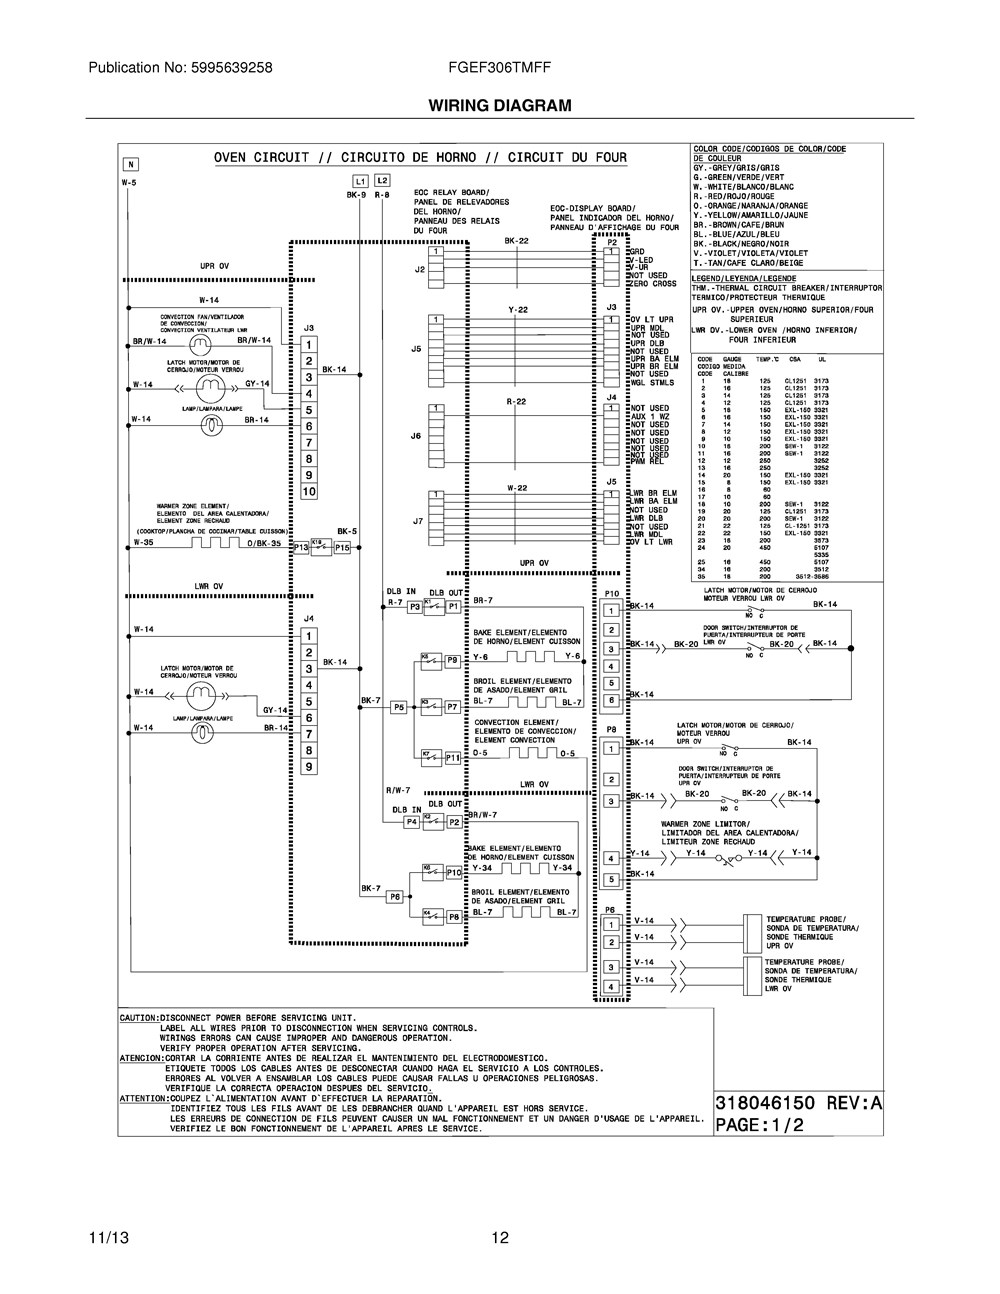 kawasaki electrical wiring diagrams kawasaki discover your fgef306tm wiring schematic for frigidaire